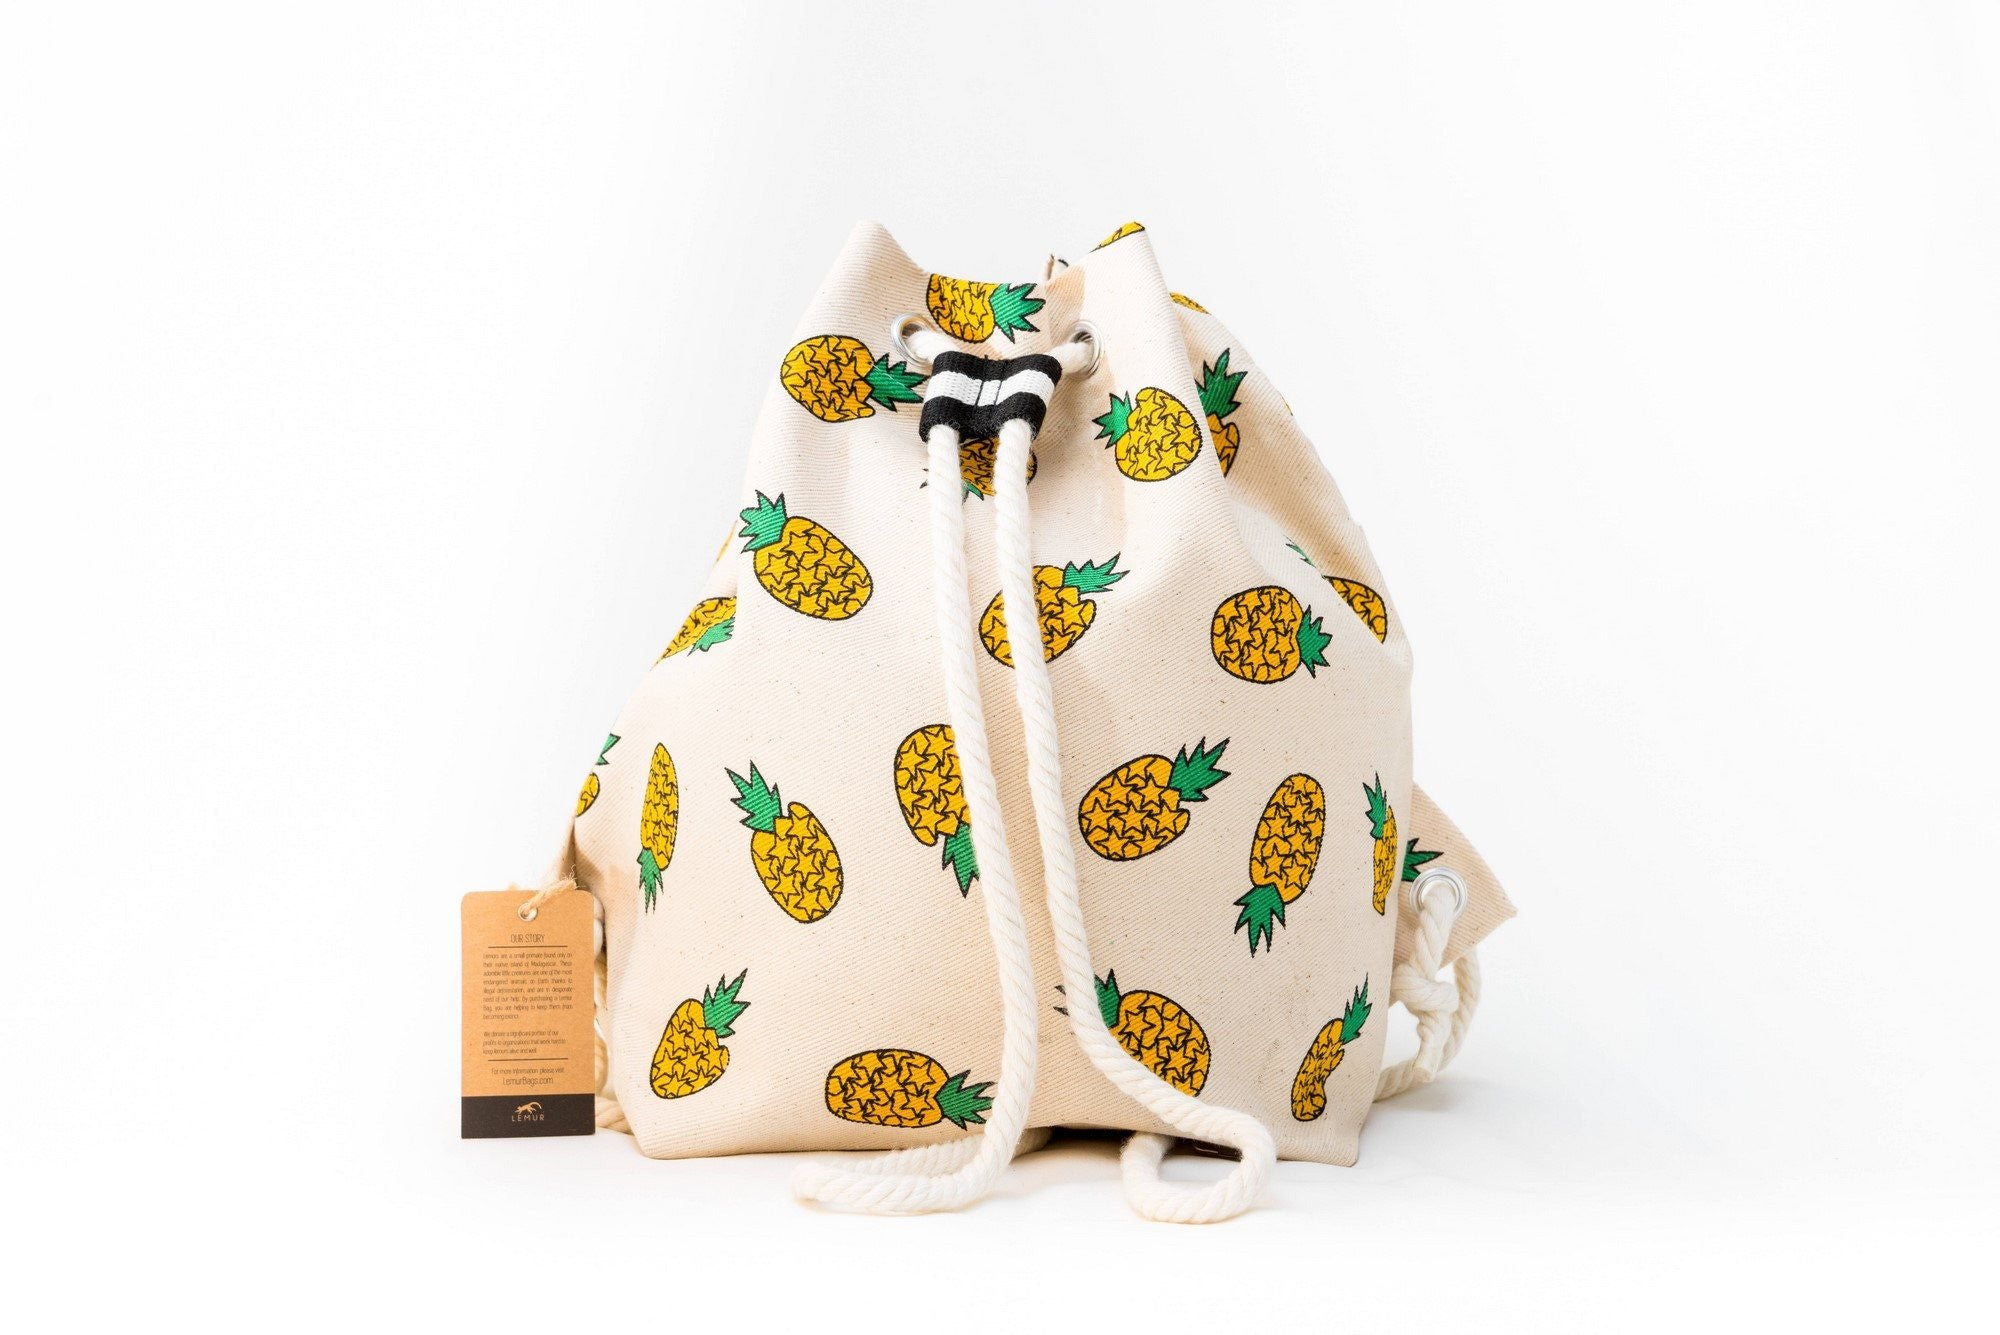 Canvas Travel Daypack - Canvas Travel Daypack - Rope Drawstring Cinchsack By Lemur Bags (Pineapples)